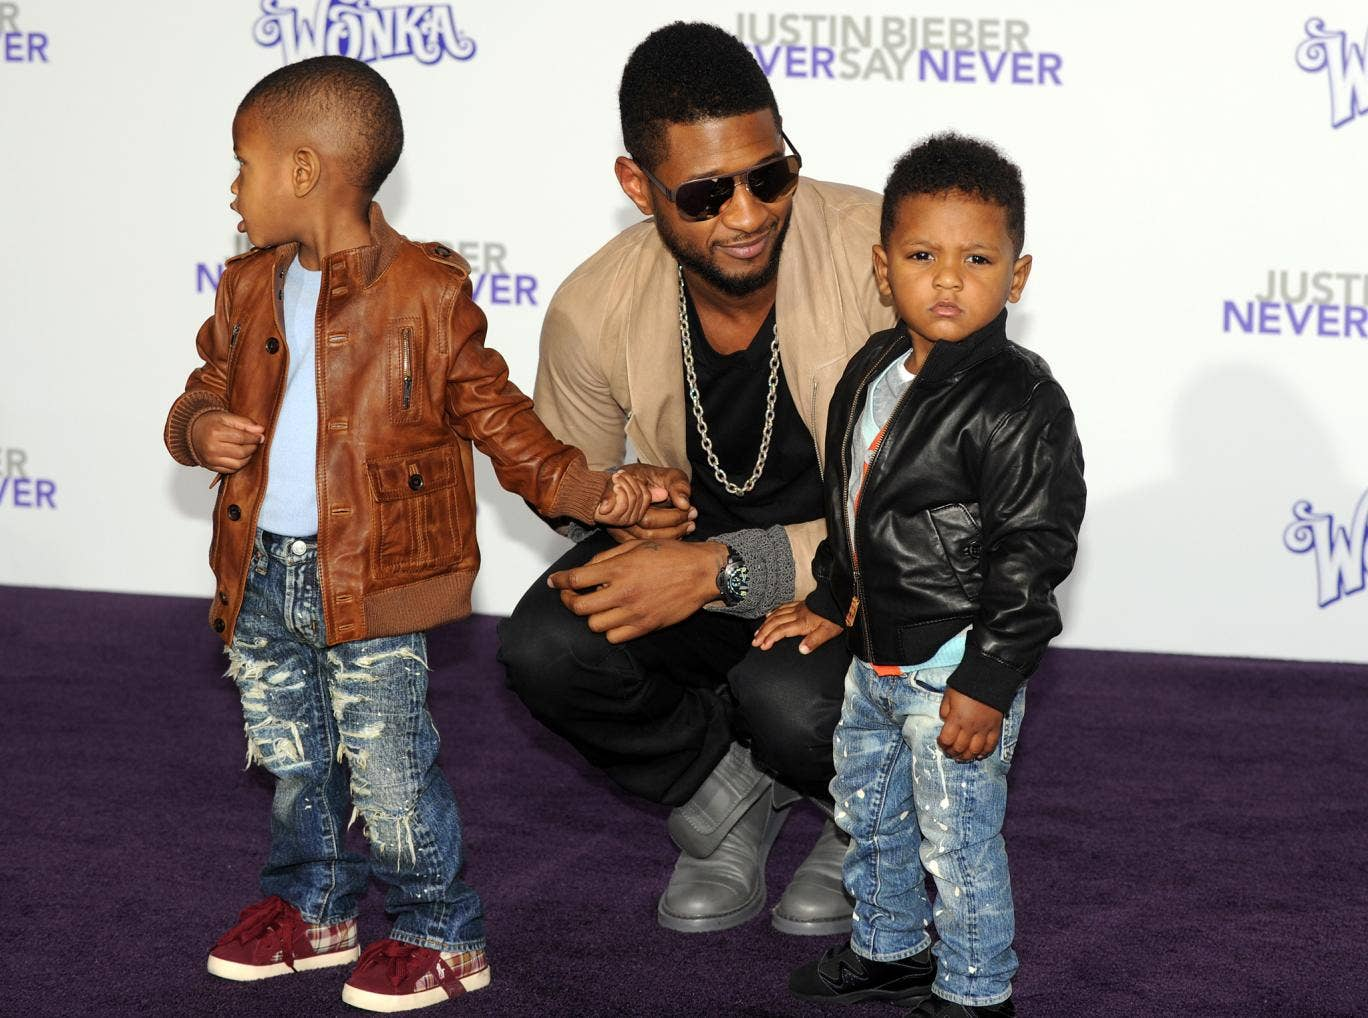 sons by Tameka Foster at a Ryan Glover And Tameka Foster